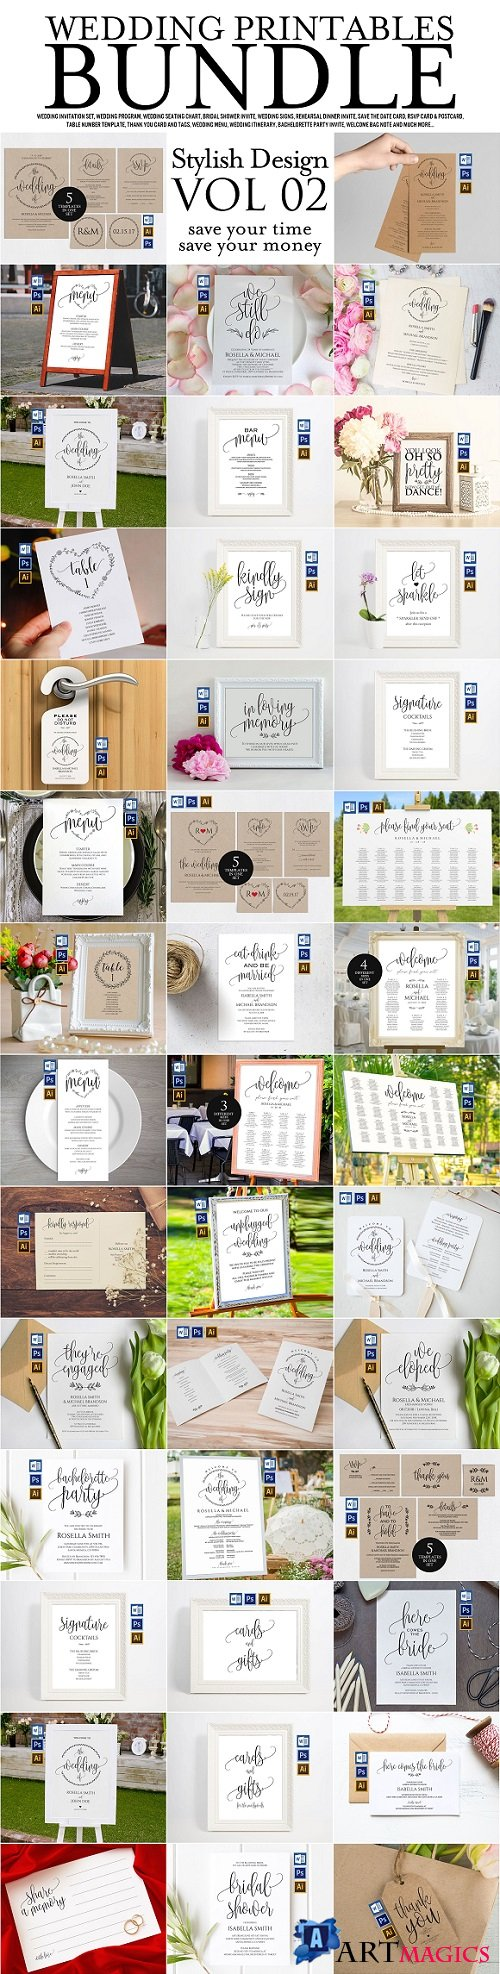 Wedding Printables Bundle Style 2 2295942